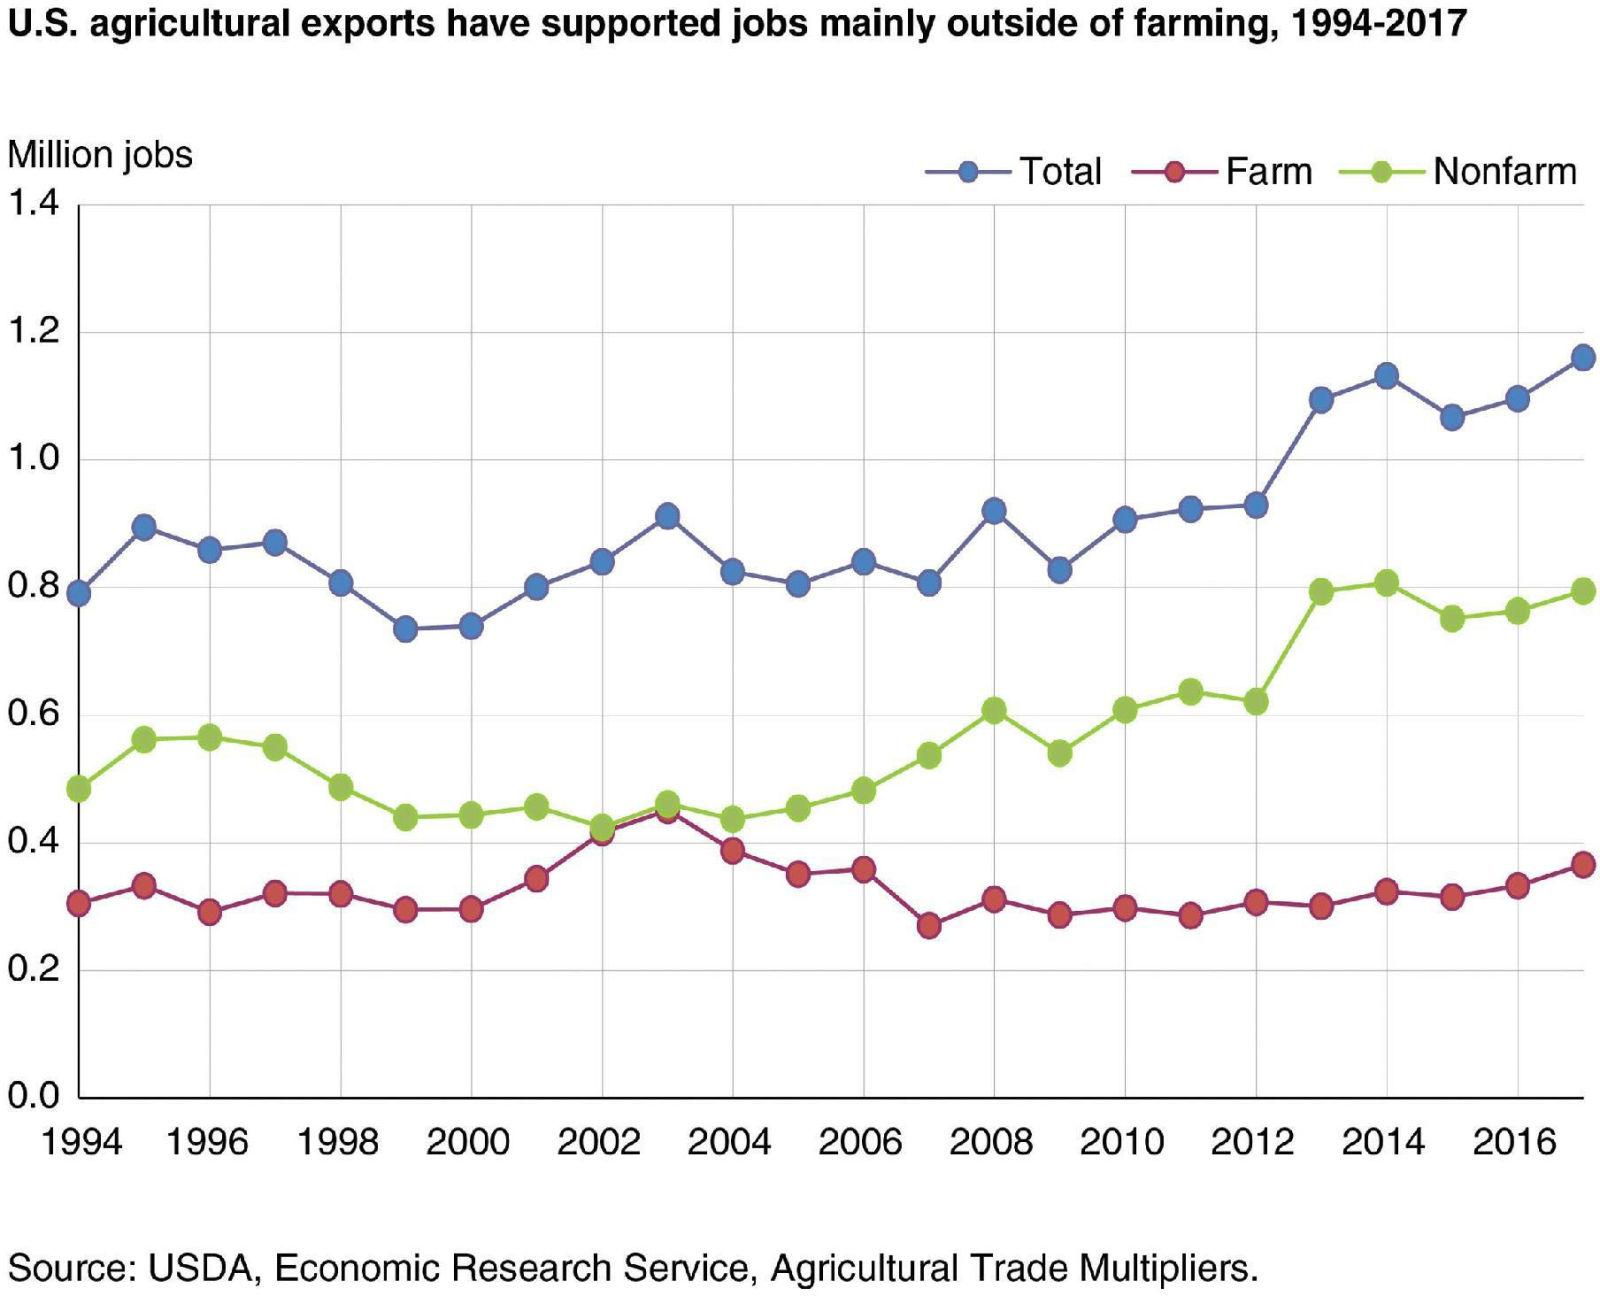 Ag exports support 1.2M full-time jobs